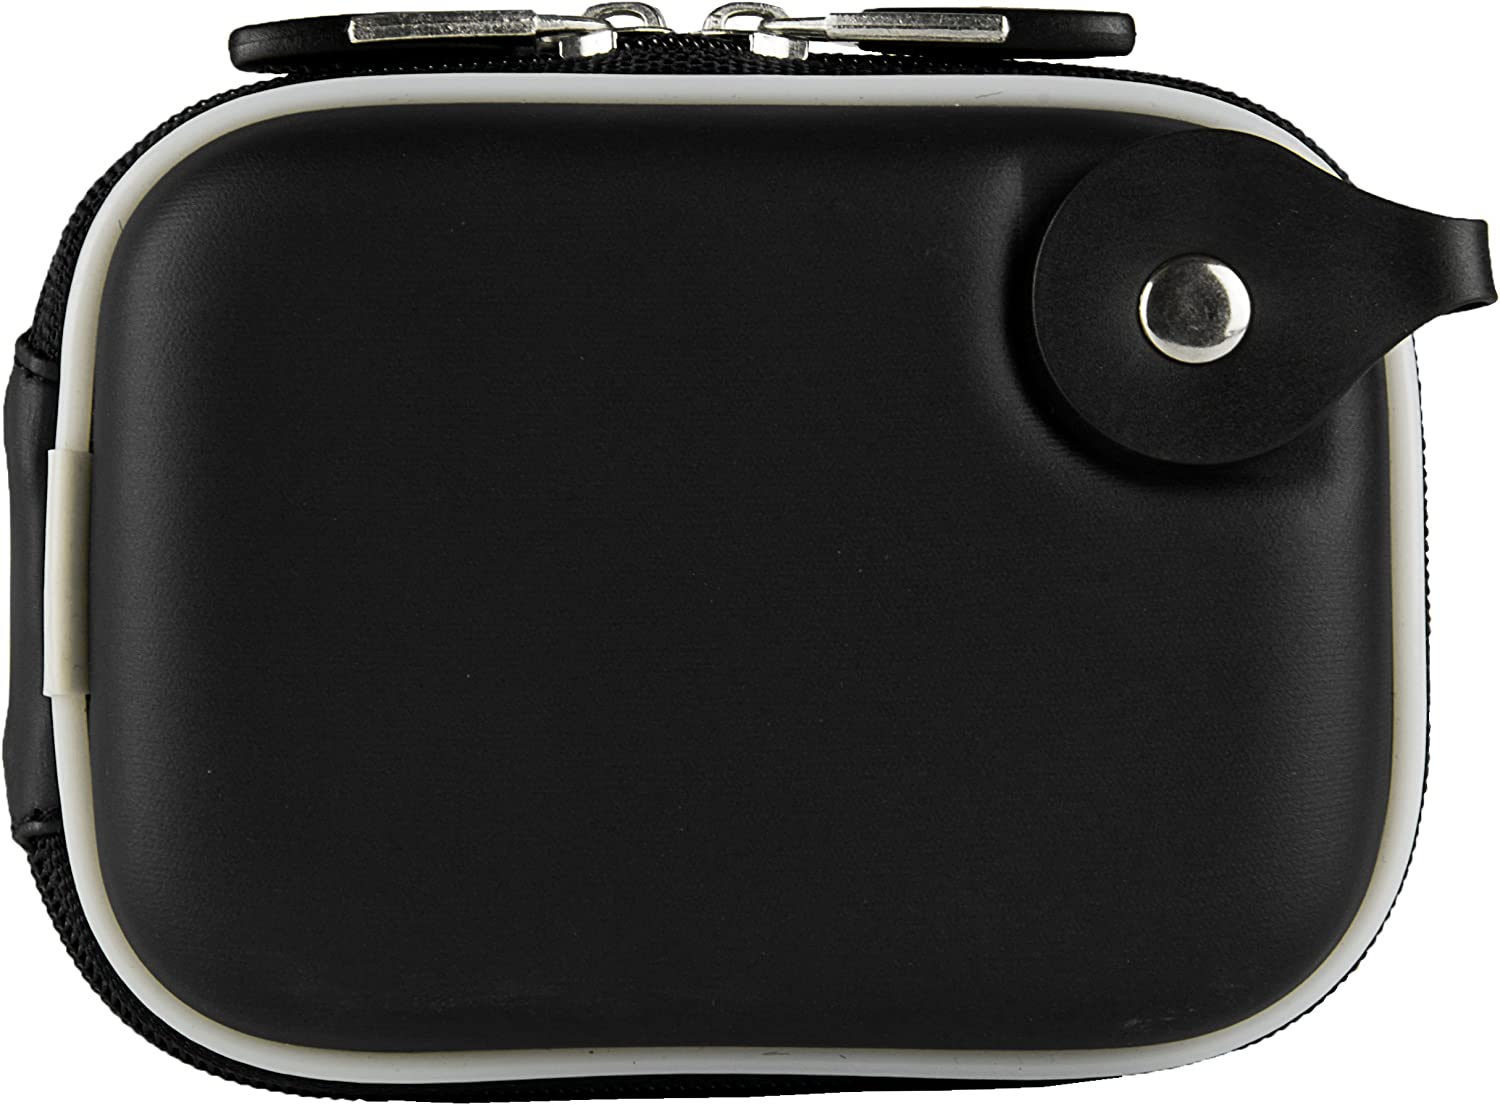 VanGoddy Matte Black Compact Camera Hard Shell Carrying Case with Universal Screen Protector Suitable for Samsung ST76 ST66 ST200F ST150F DV300F DV150F